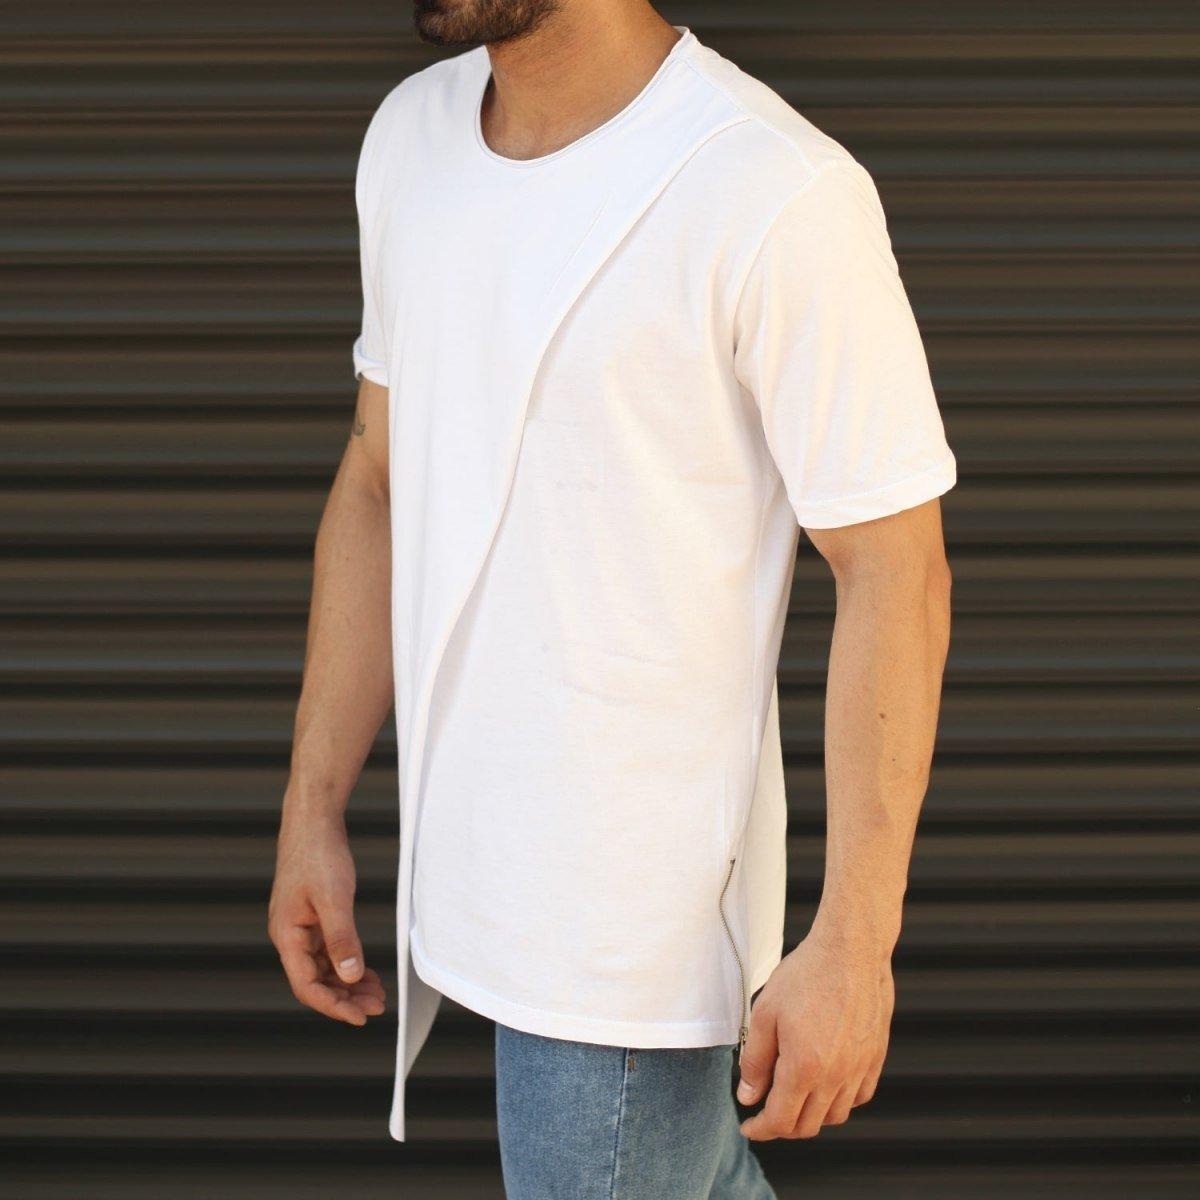 Men's Cross-Pieced Round Neck T-Shirt In White Mv Premium Brand - 2